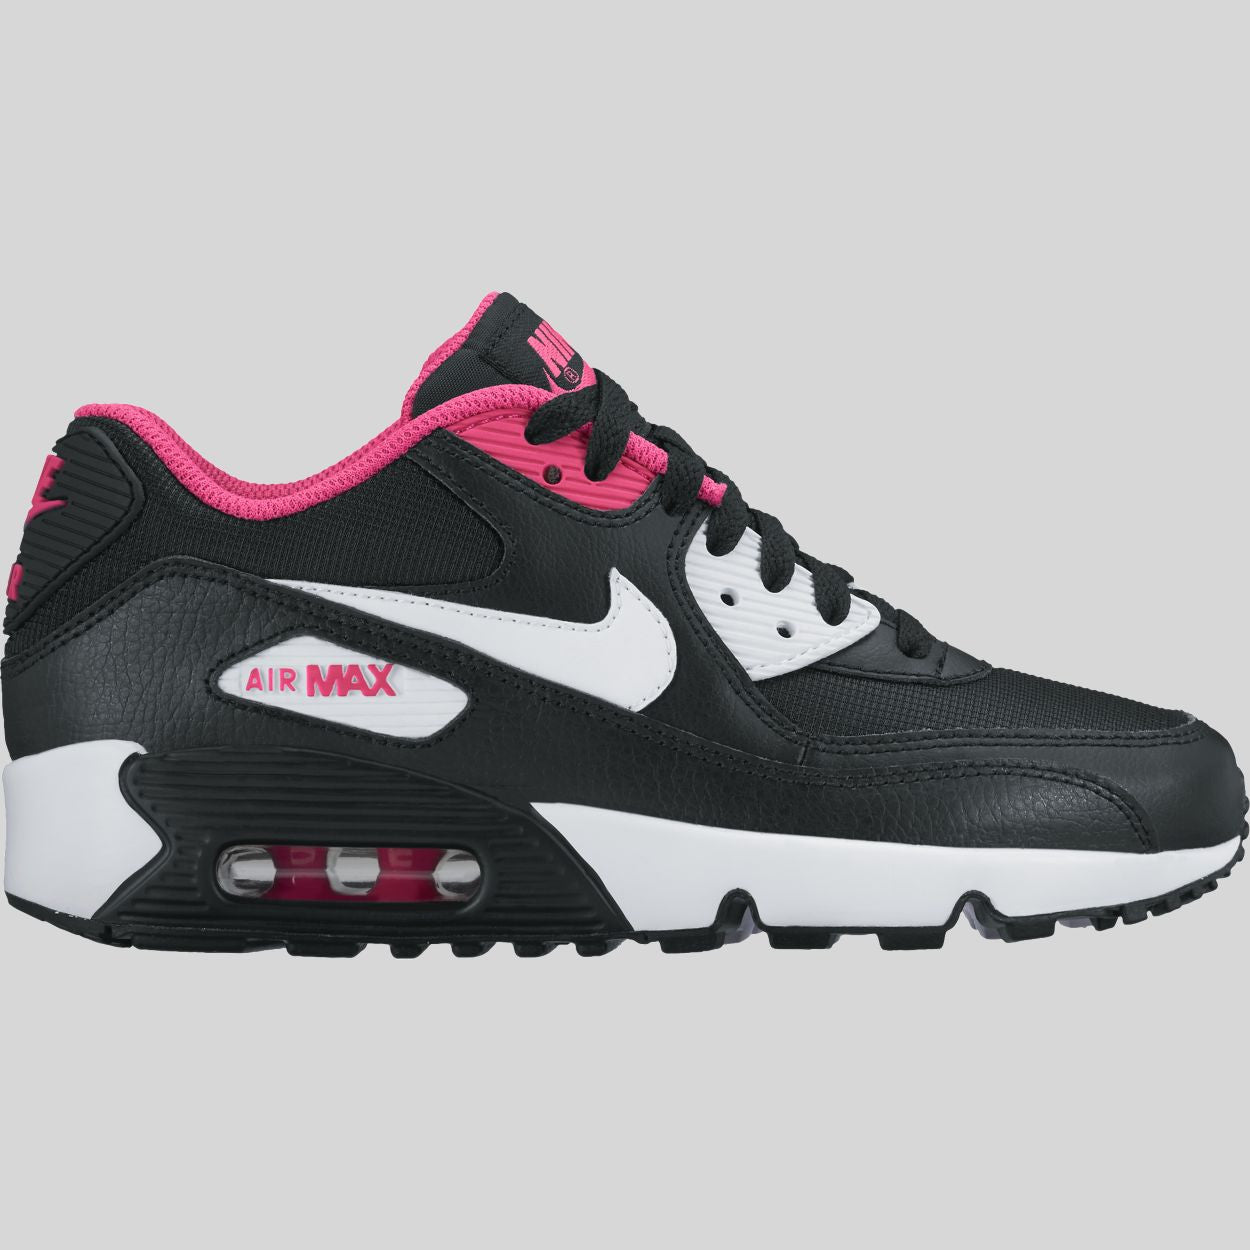 67487fd3af14 Nike Air Max 90 Mesh (GS) Black White Vivid Pink (833340-002)